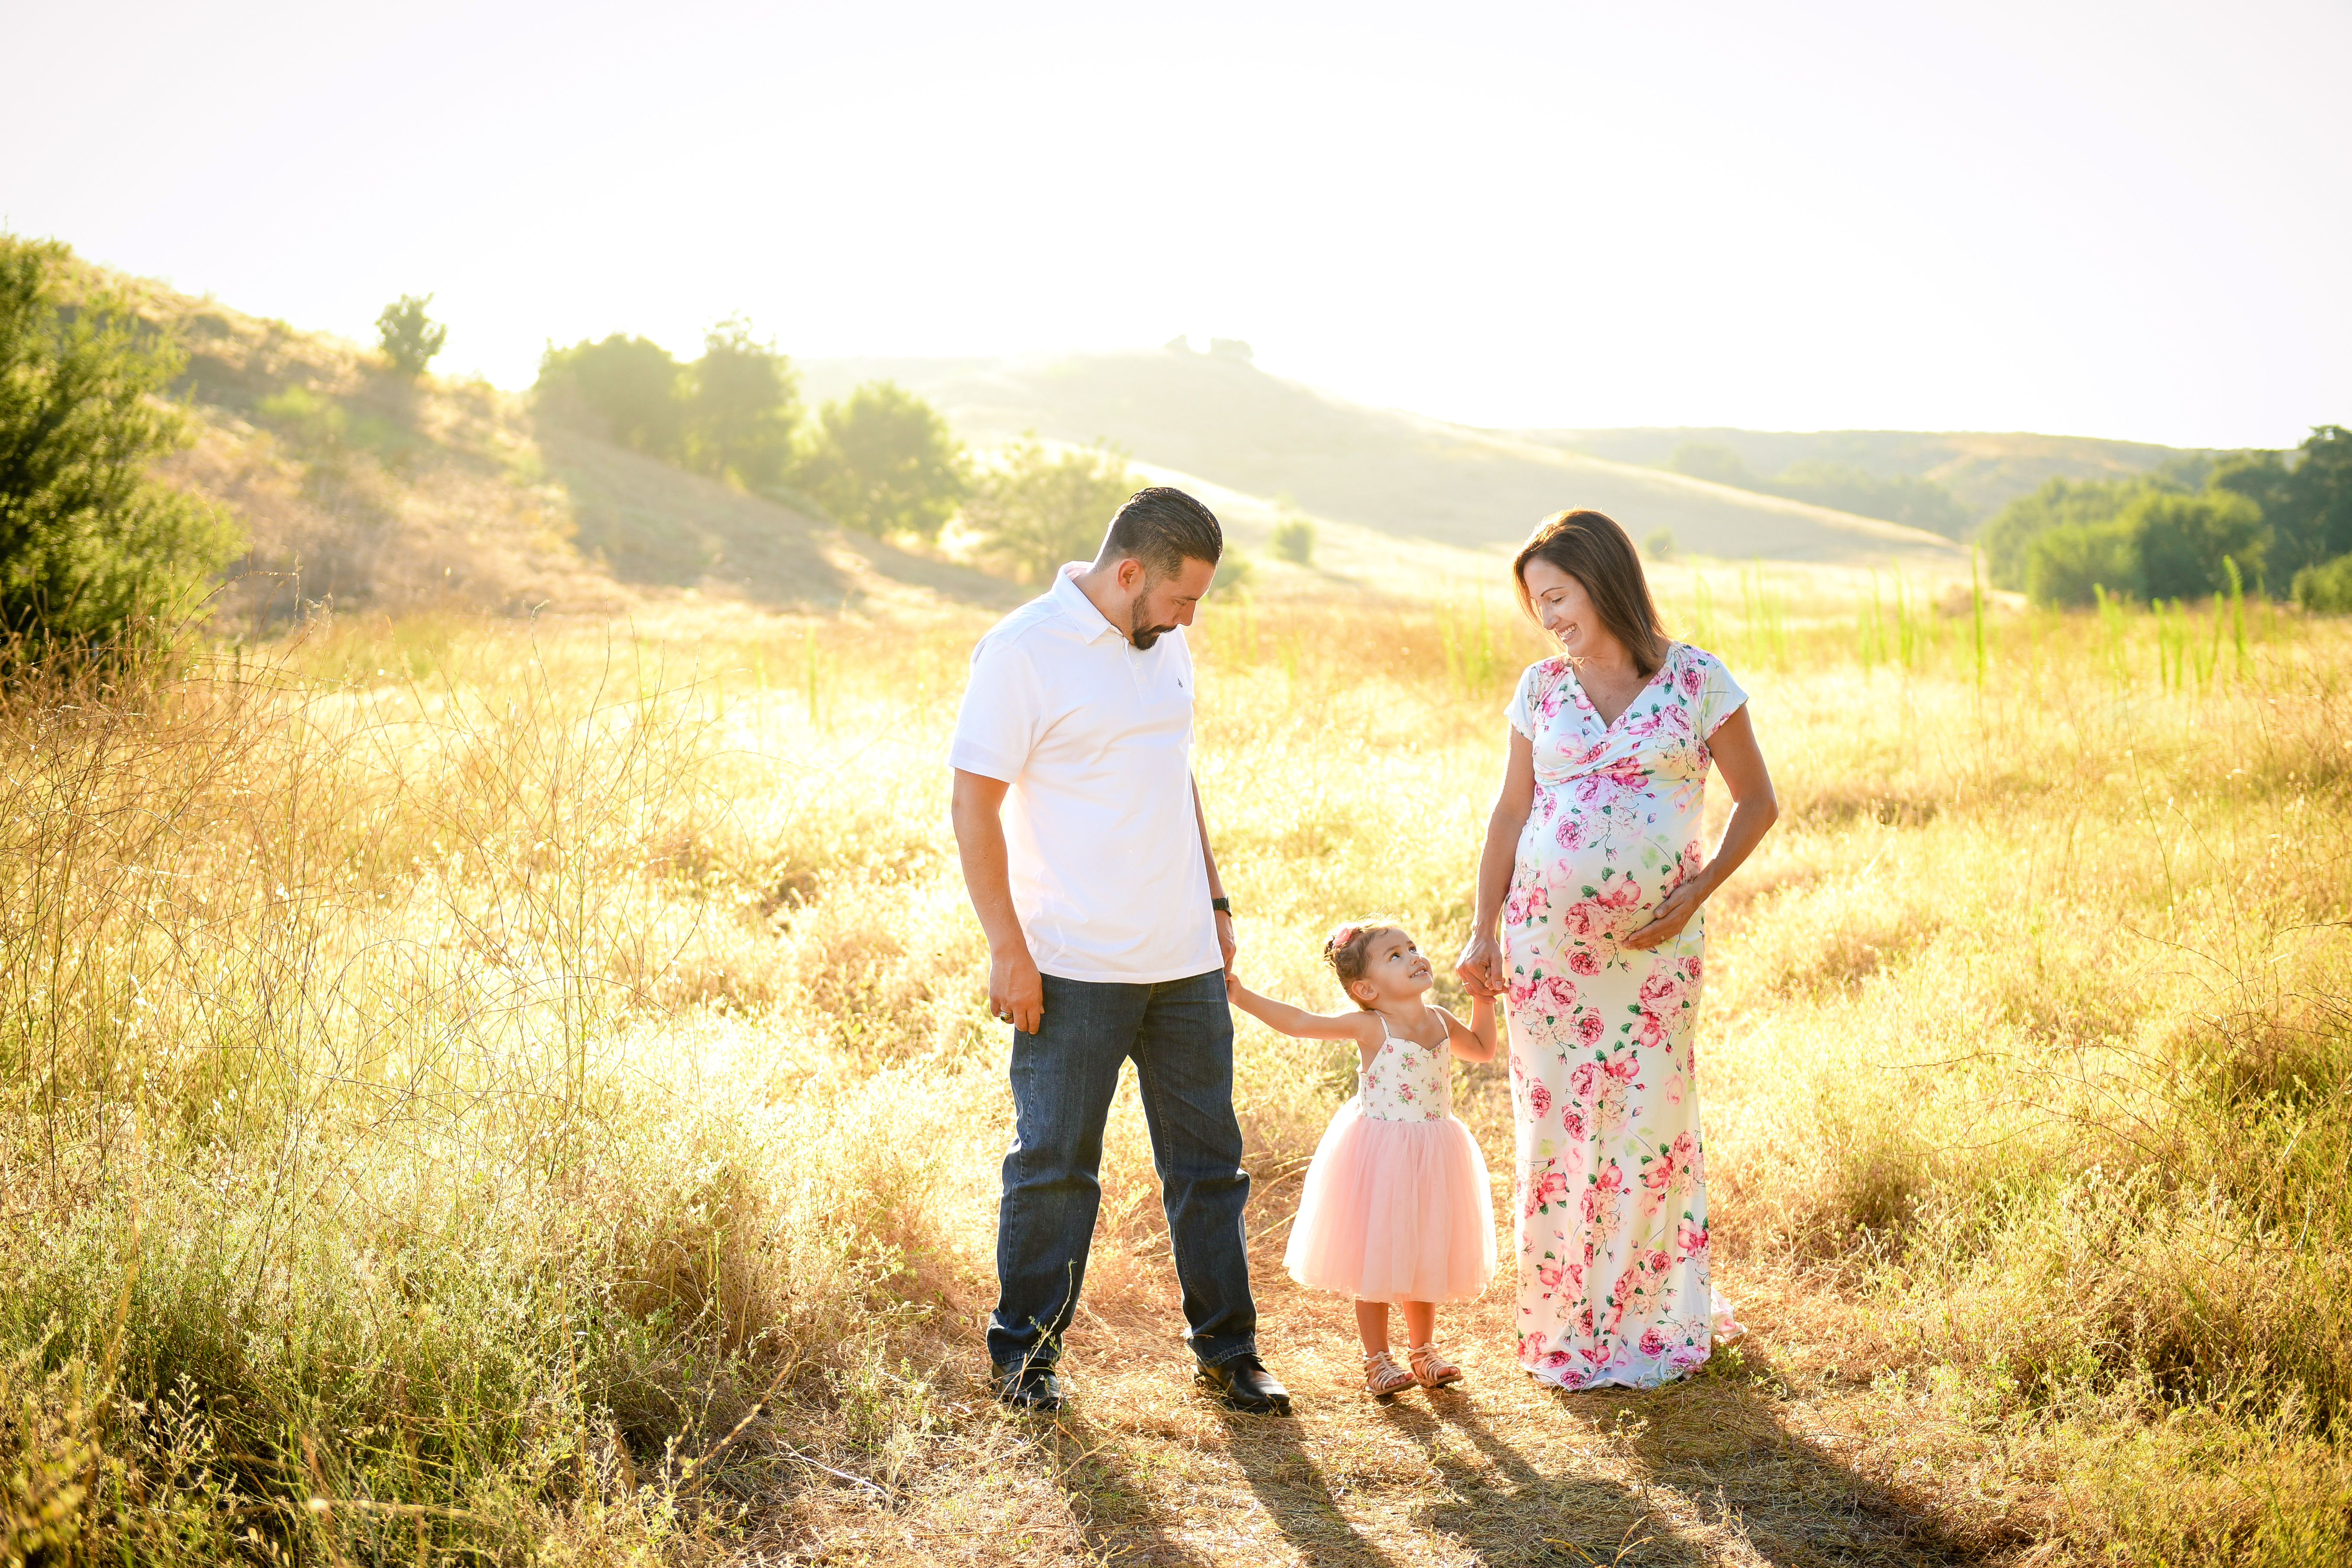 Family maternity pictures | maternity pictures | orange county maternity pictures